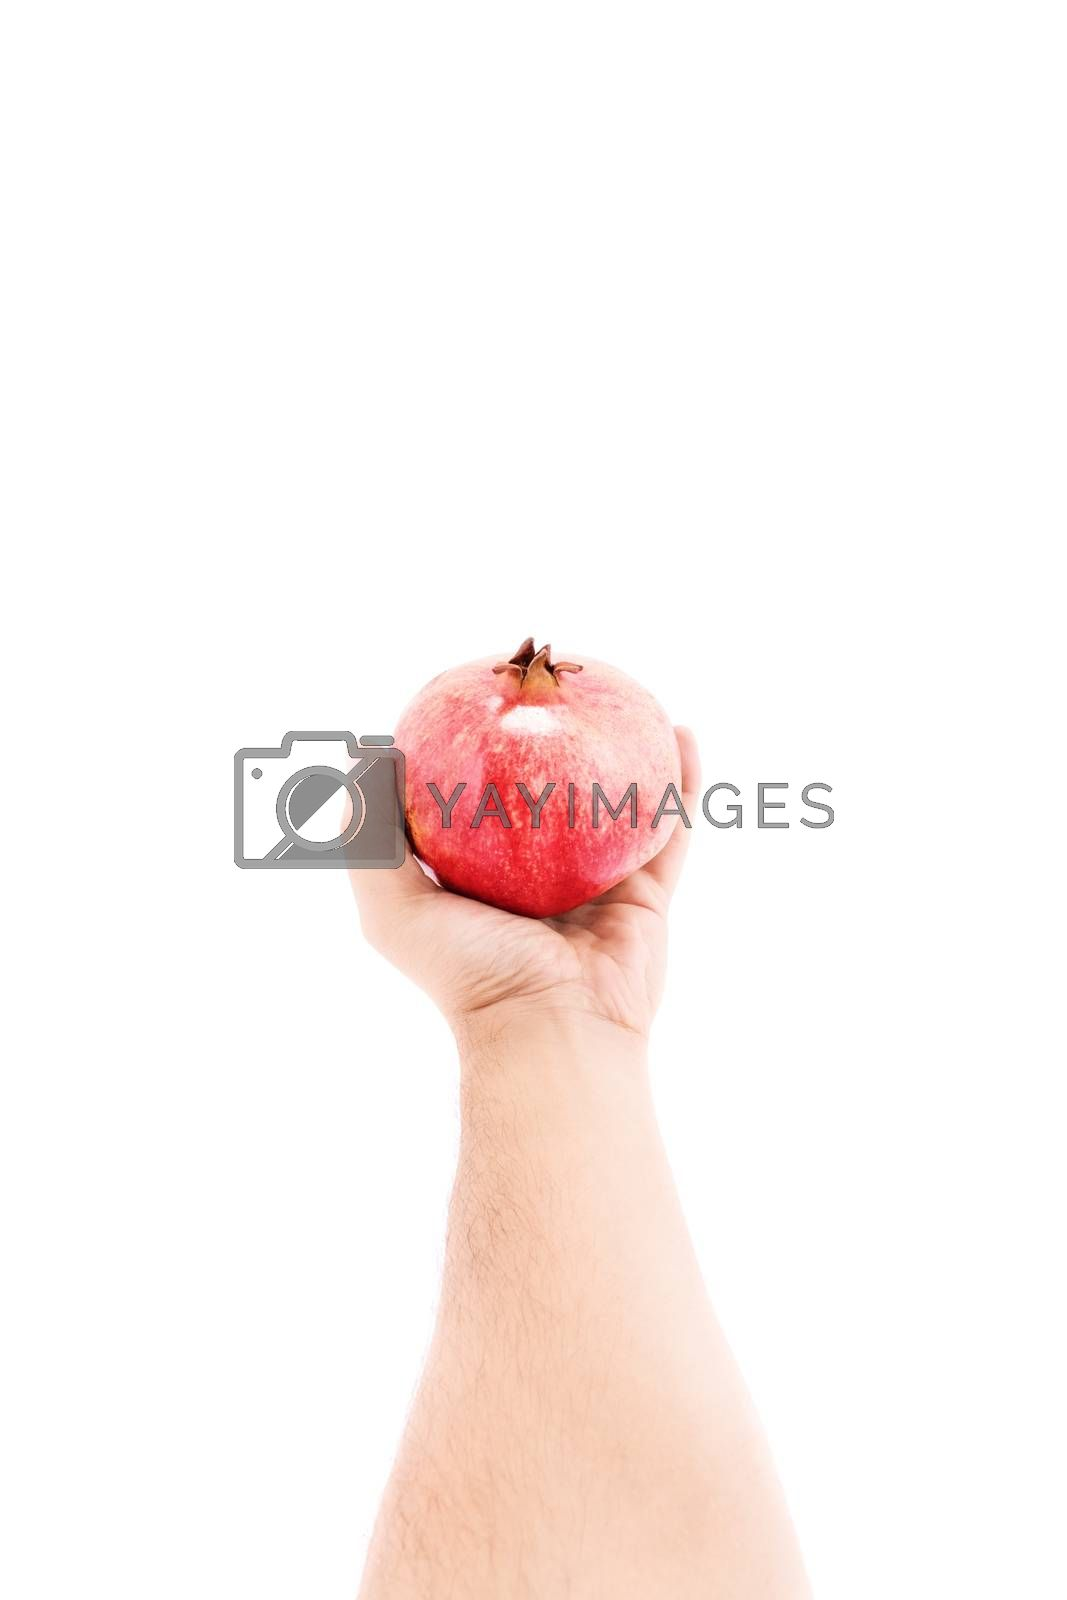 Male hand offering a pomegranate, isolated on white background.